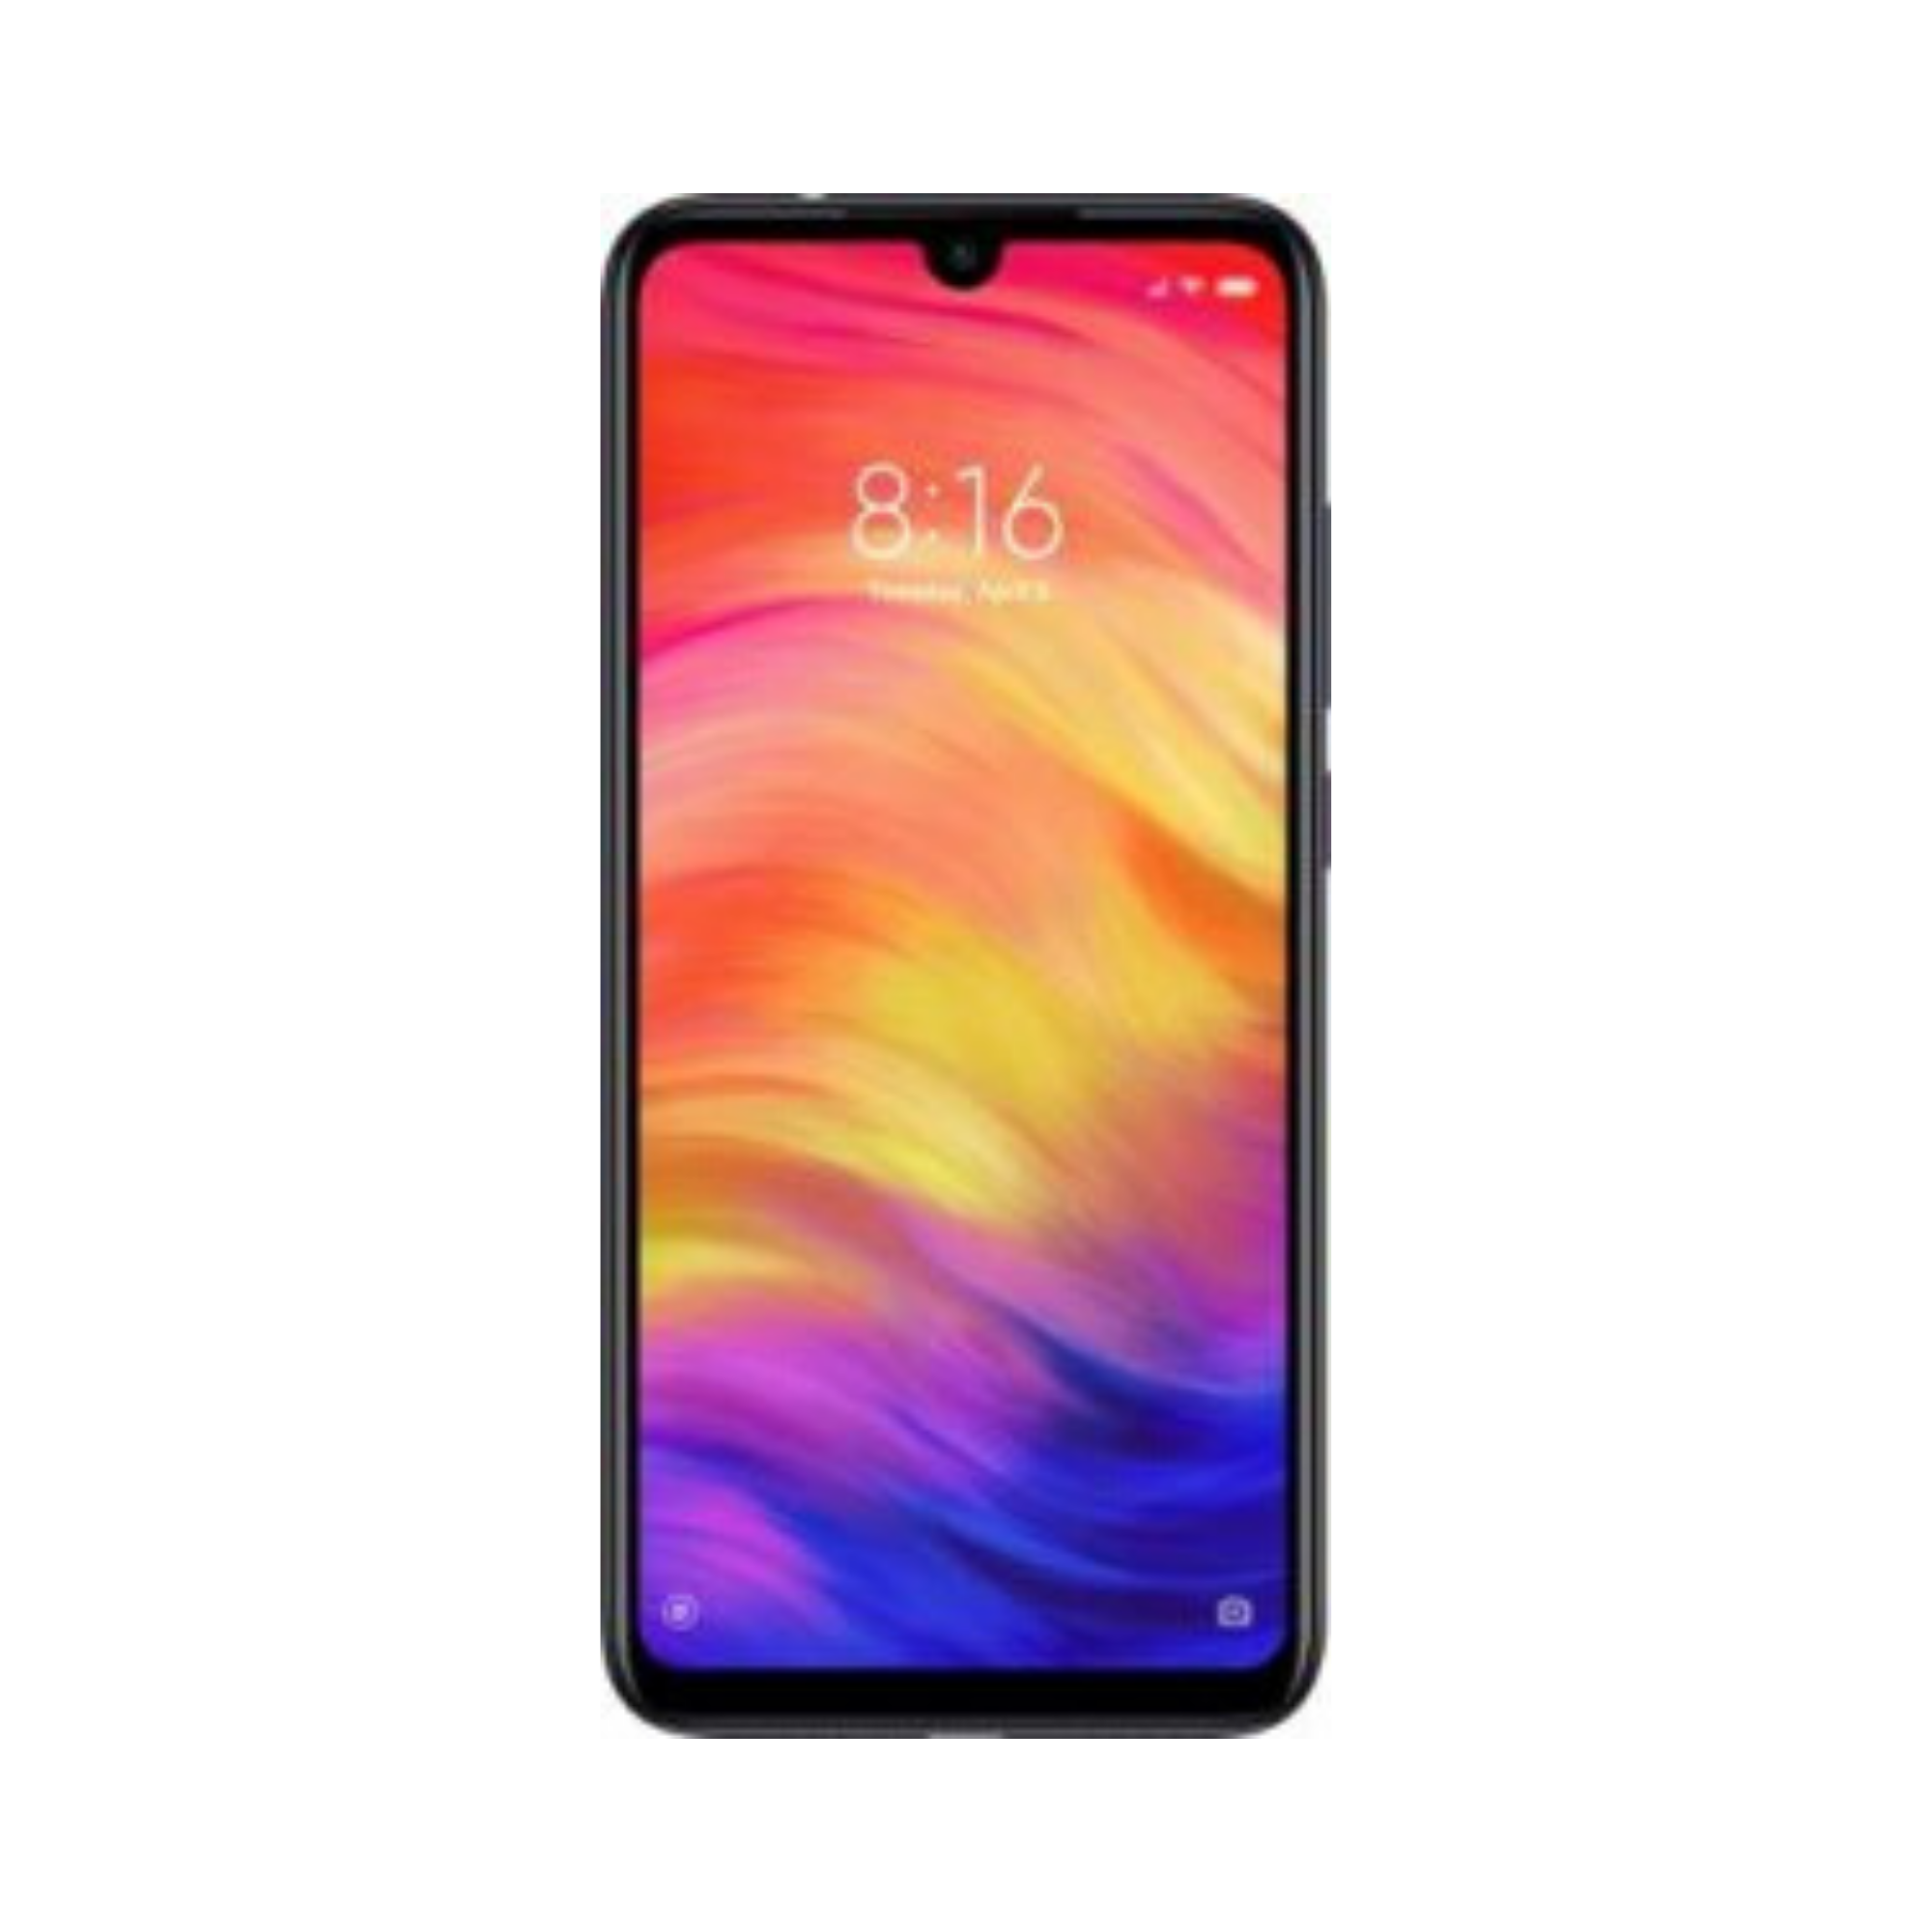 Xiaomi Redmi Note 7 Pro (Space Black, 64GB, 4GB RAM)